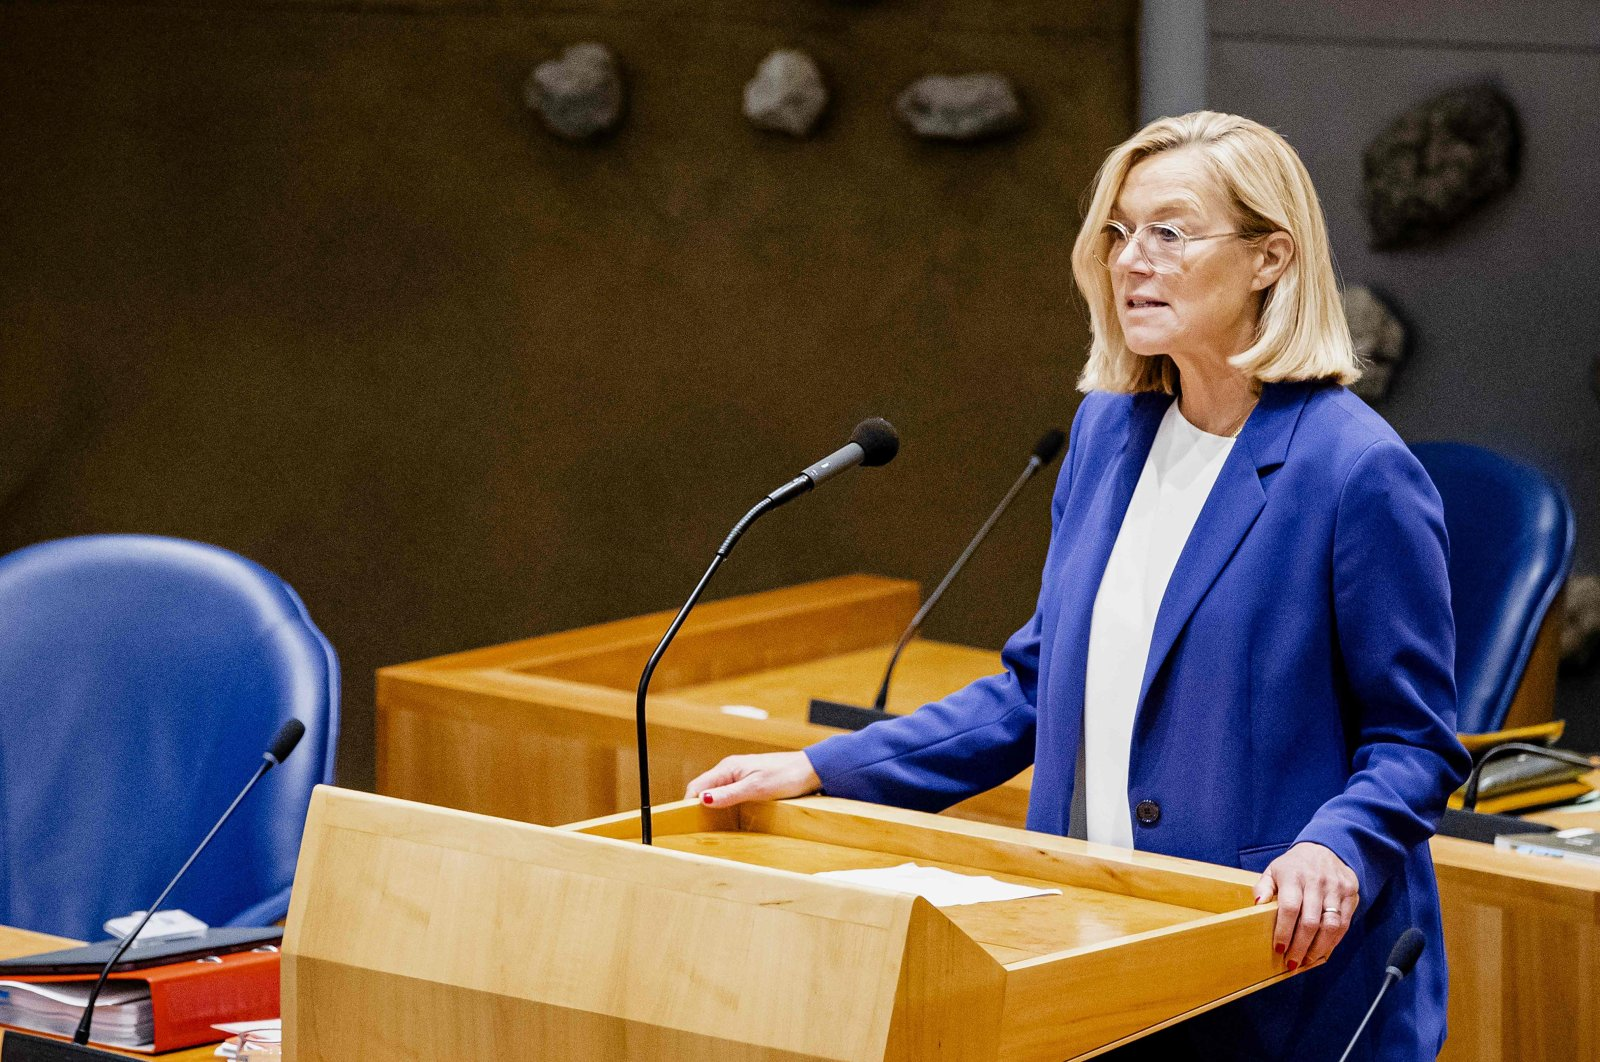 Outgoing Minister Sigrid Kaag of Foreign Affairs (D66) speaks as she resigns at the House of Representatives in the Hague, the Netherlands, Sept. 16, 2021. (AFP Photo)